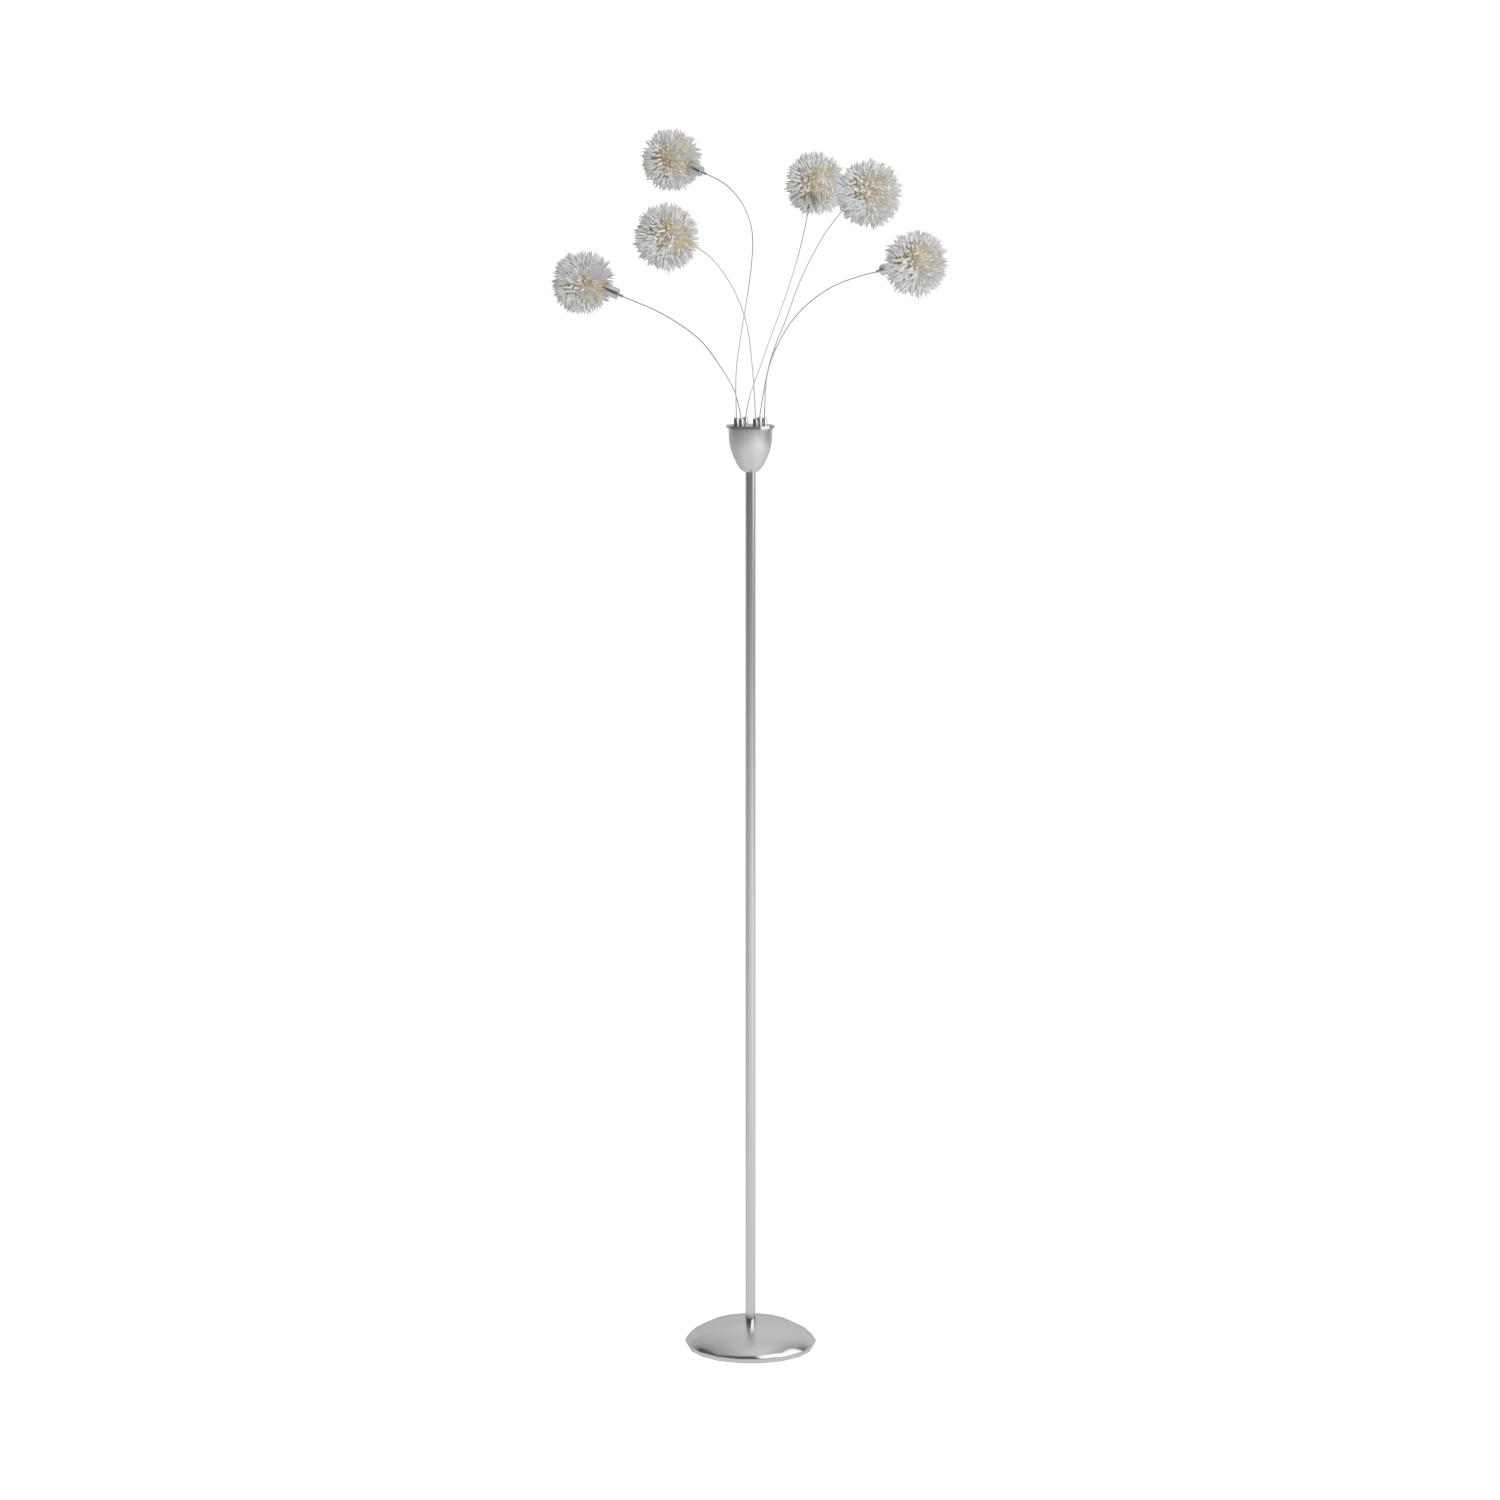 Adesso Pom Pom 6 Light Floor Lamp 68 High Satin Steel Finish Corrosion Resistant Scratch Proof Smart Outlet Compatible Home Decor Accessory Electronics